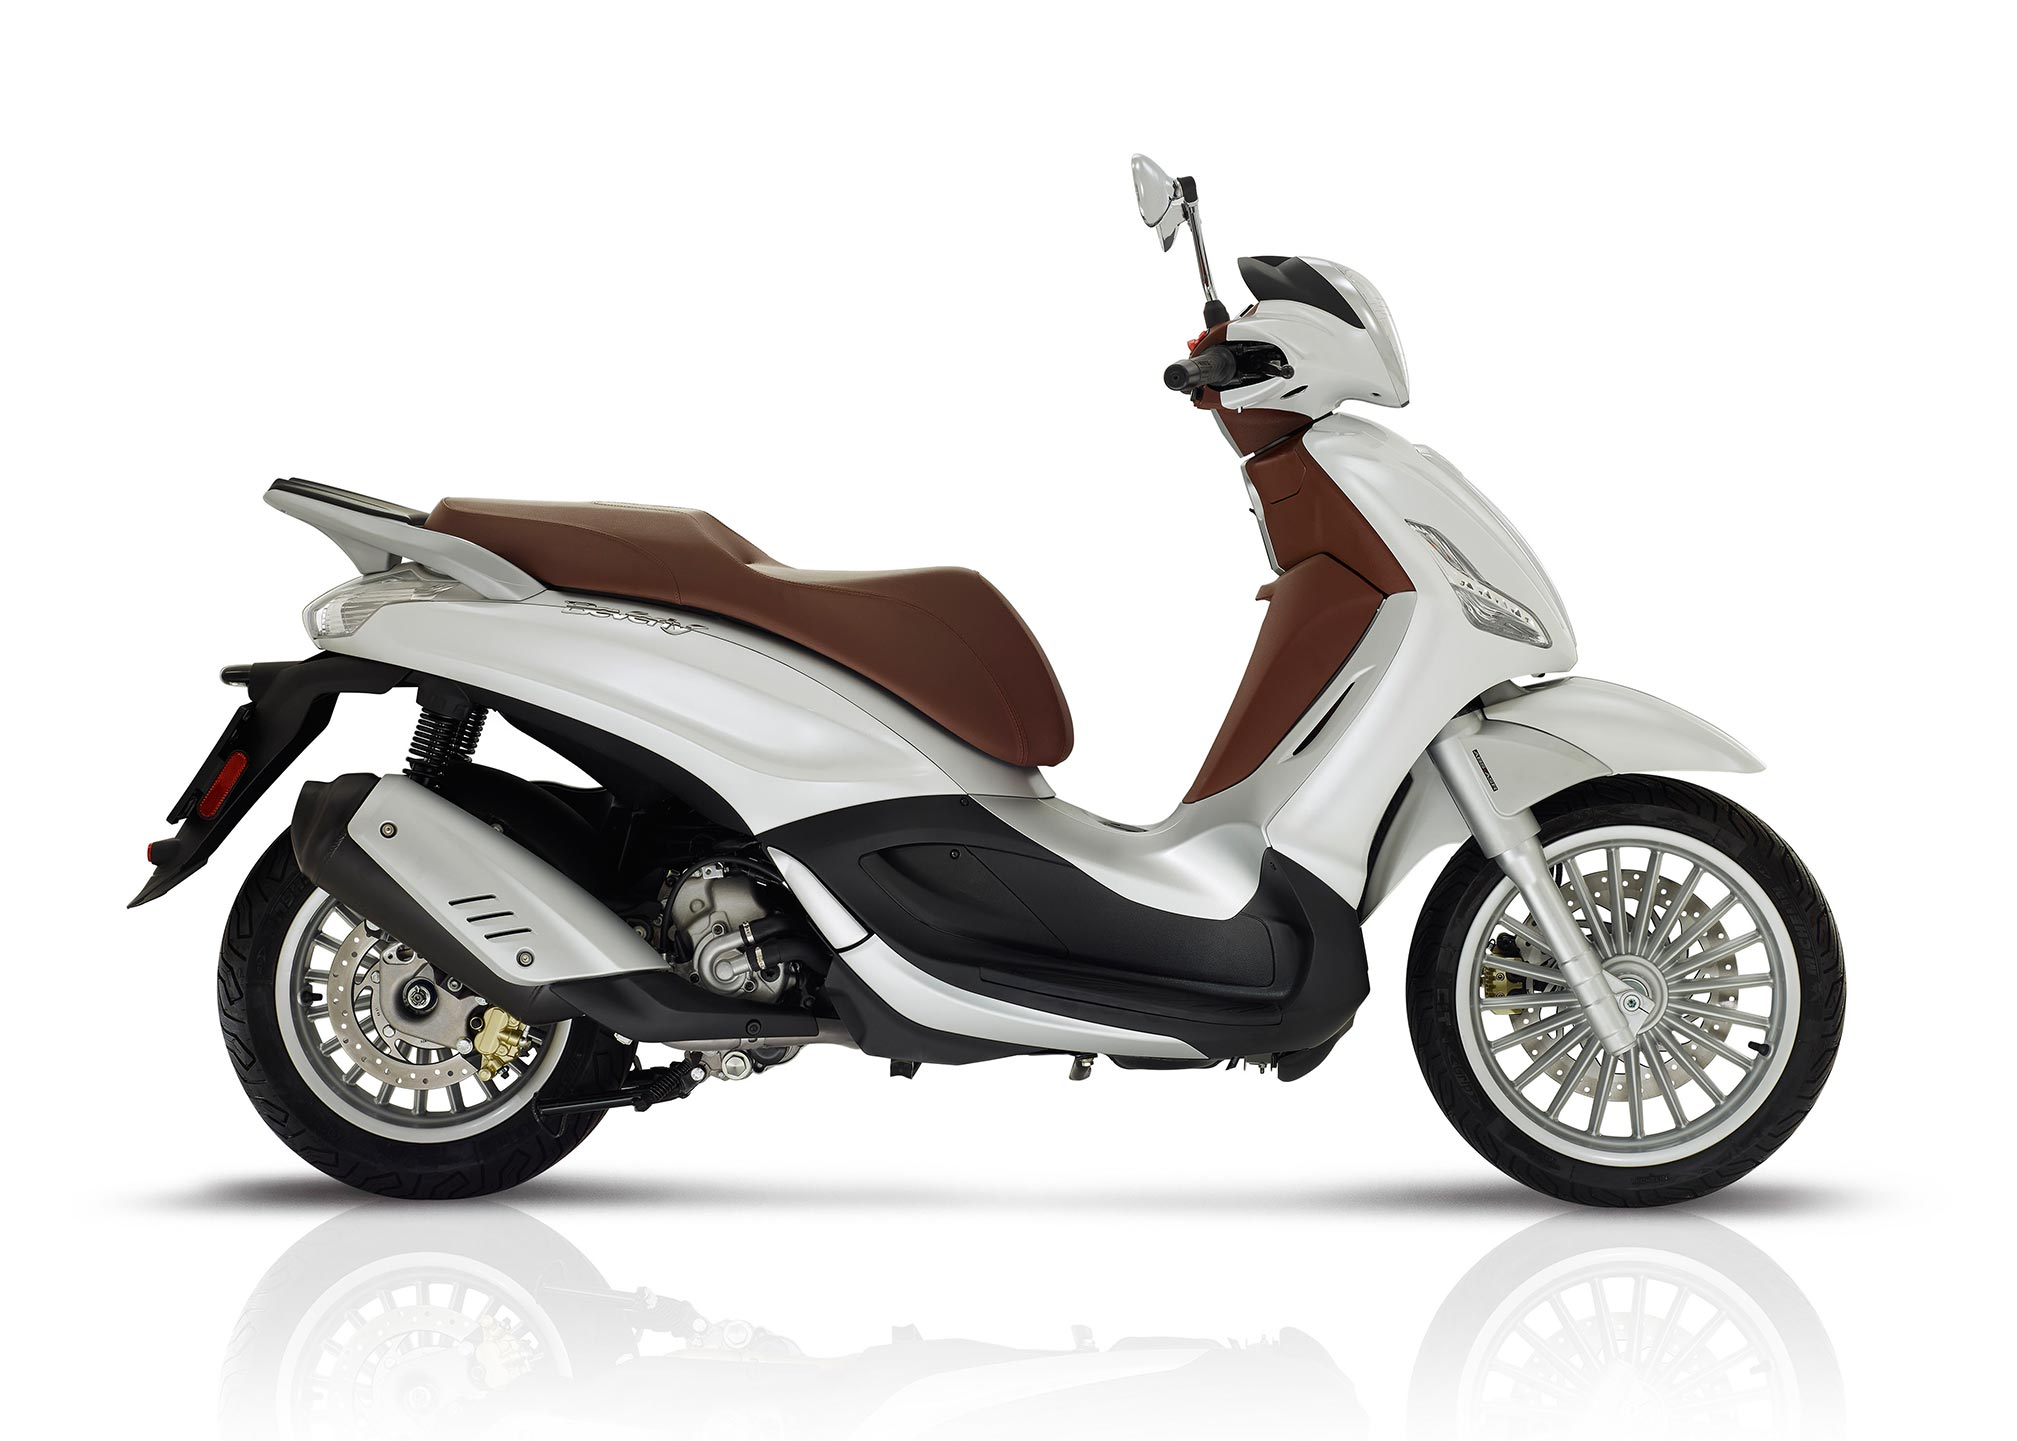 2017 piaggio beverly 300 review